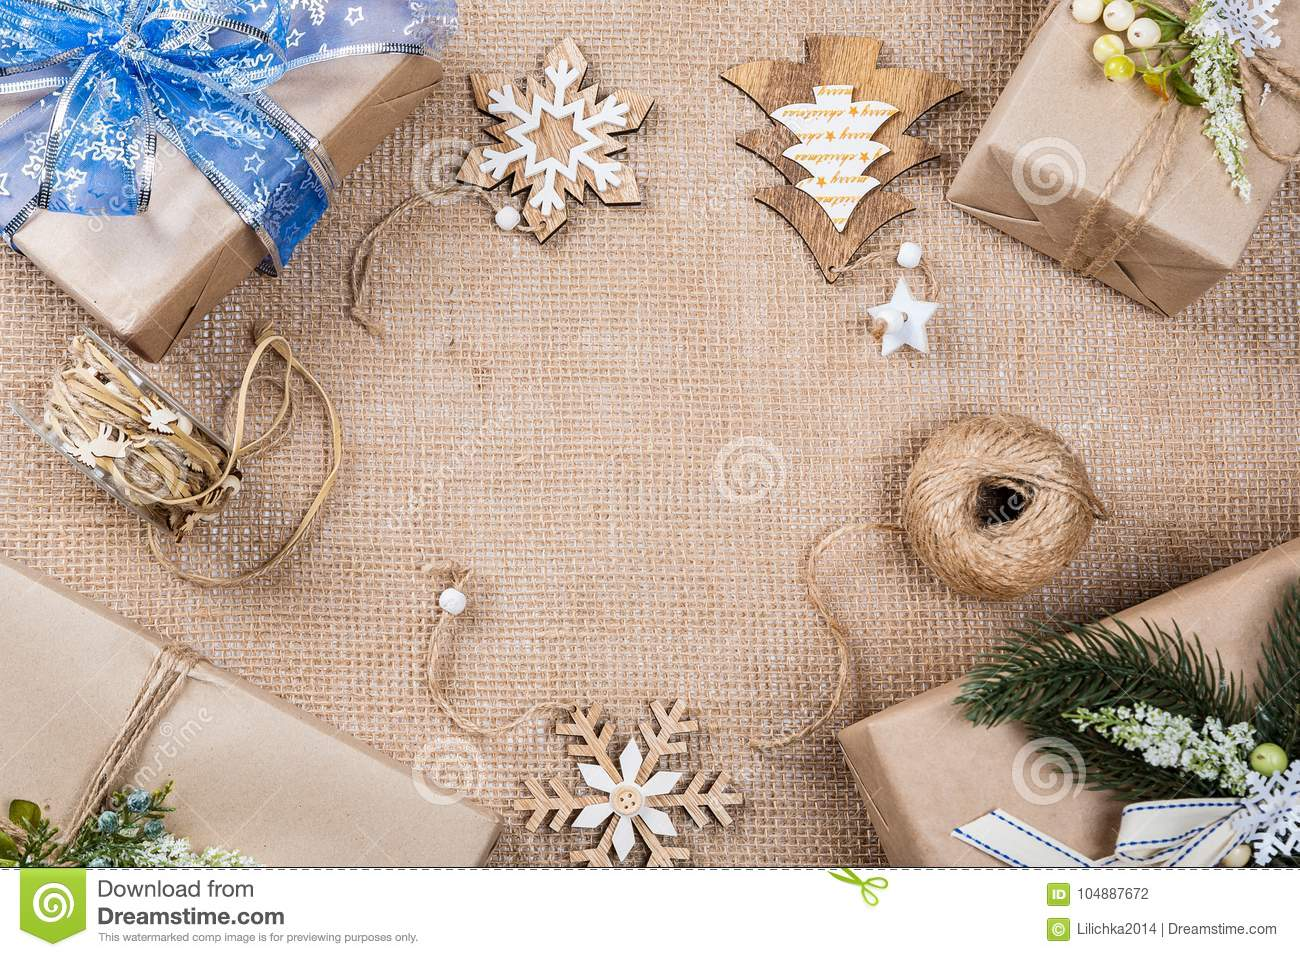 classy christmas gifts box presents in brown paper with toys and new year decor on burlap